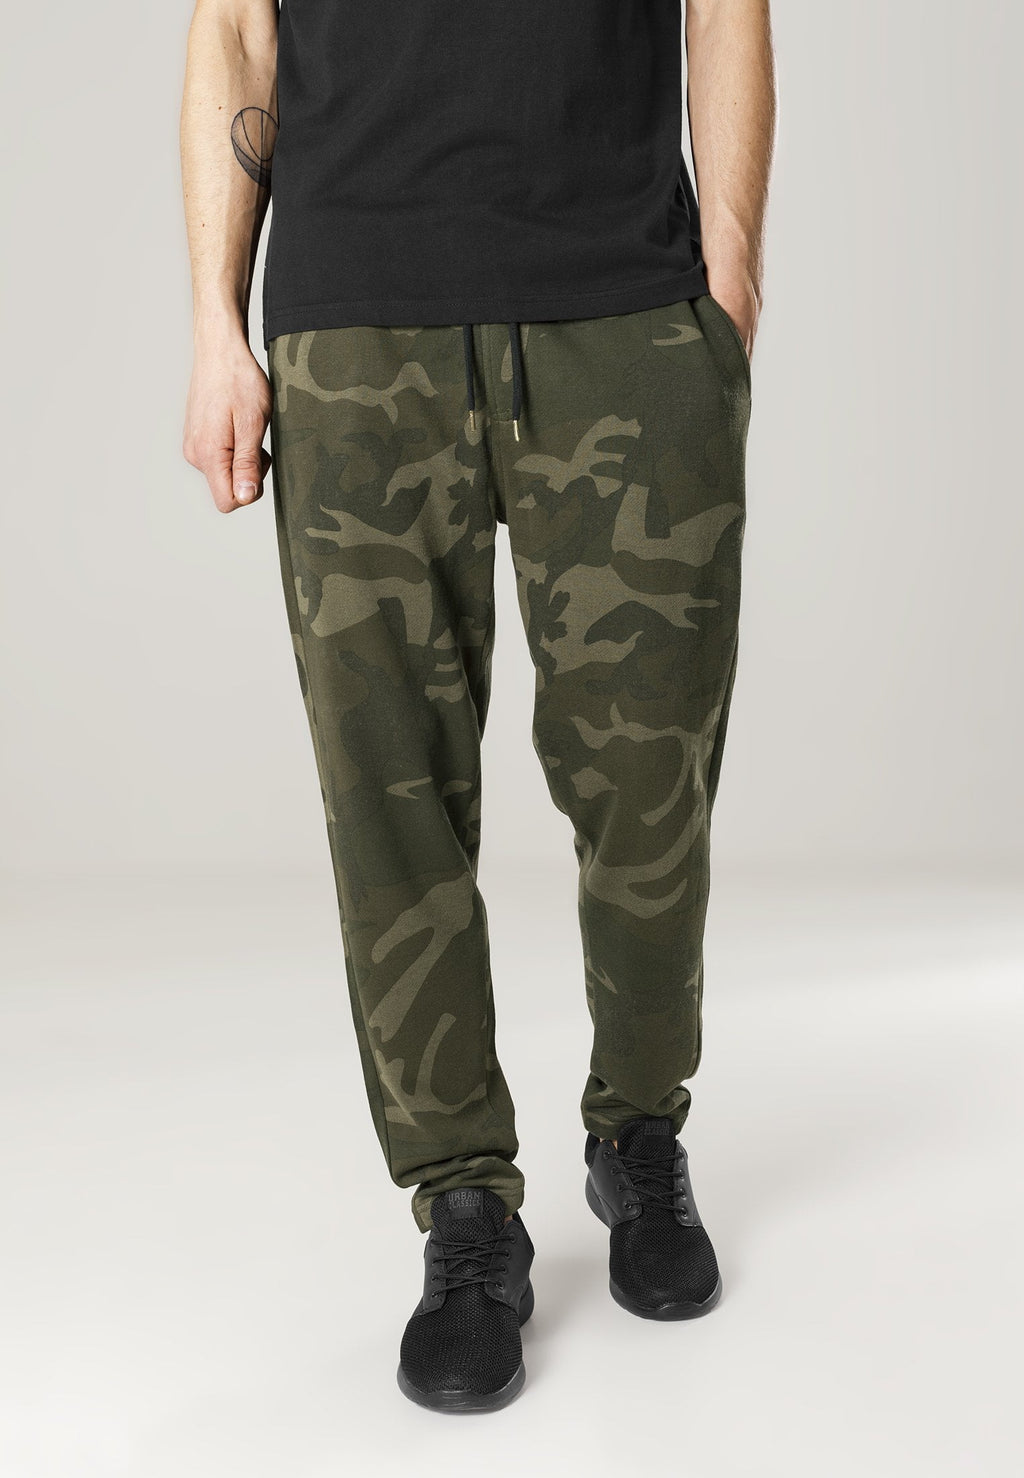 Camo Sweat Pants - Army